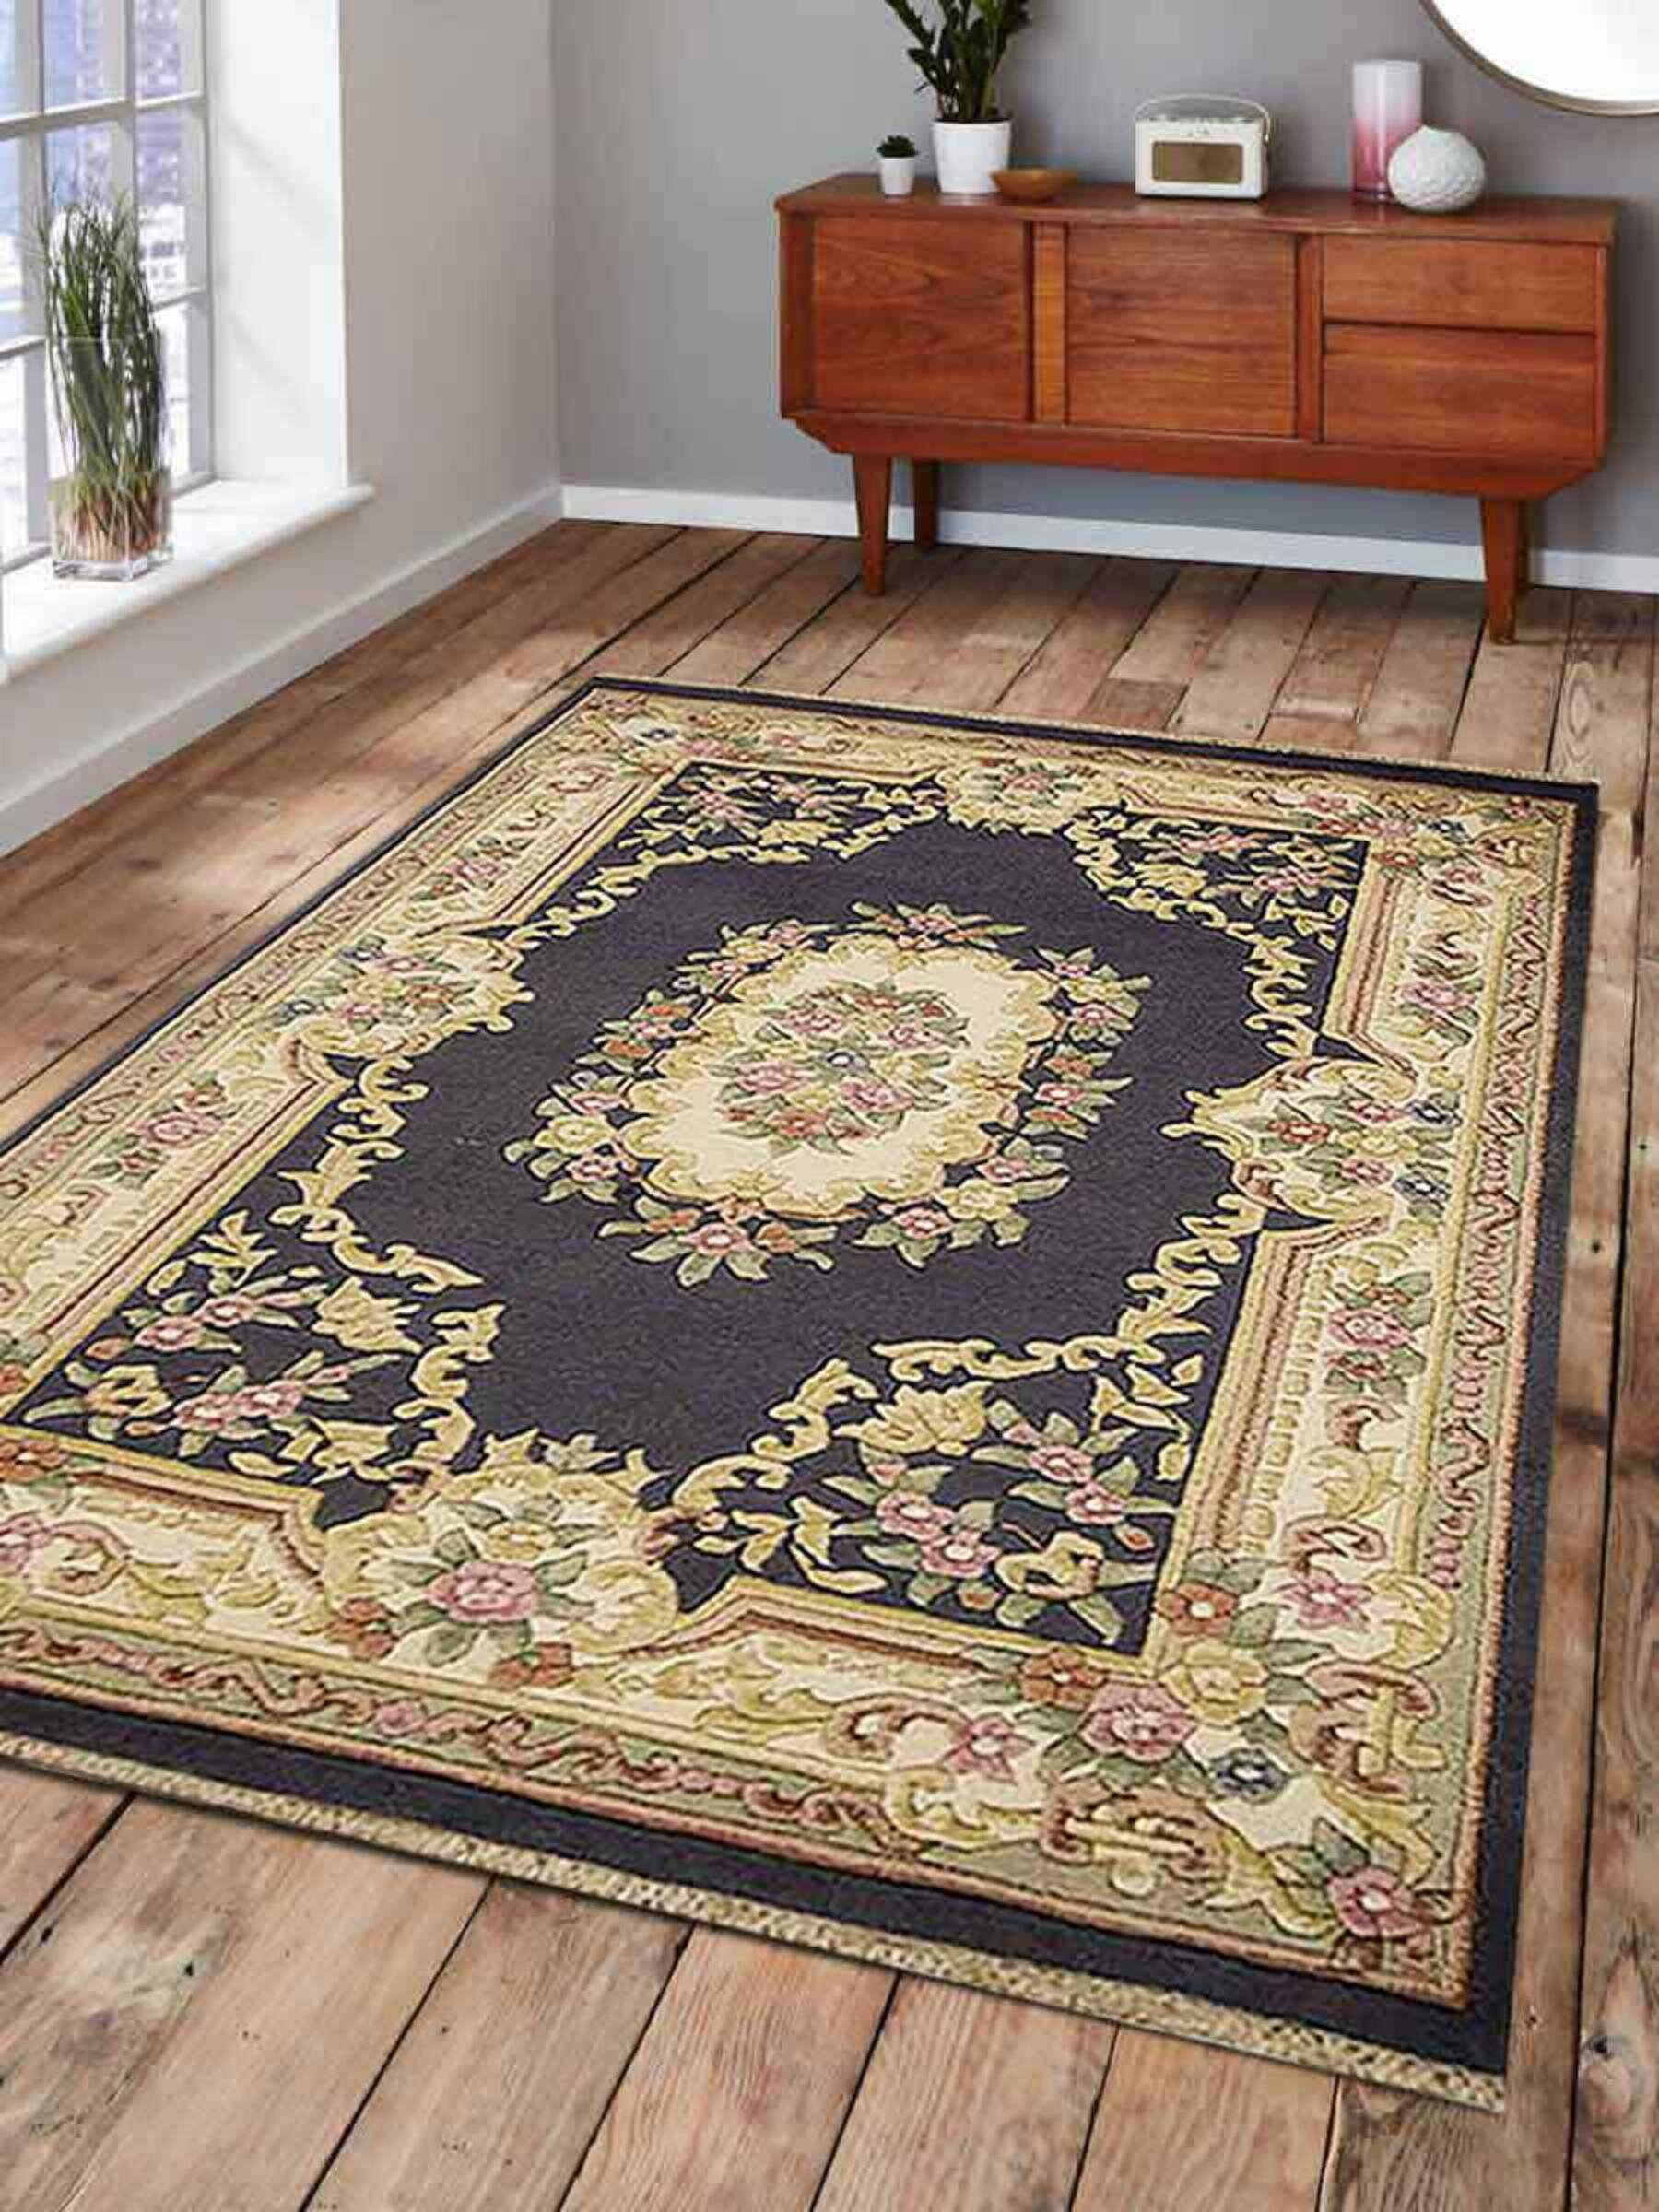 Knotted Astoria Grand Area Rugs You Ll Love In 2021 Wayfair